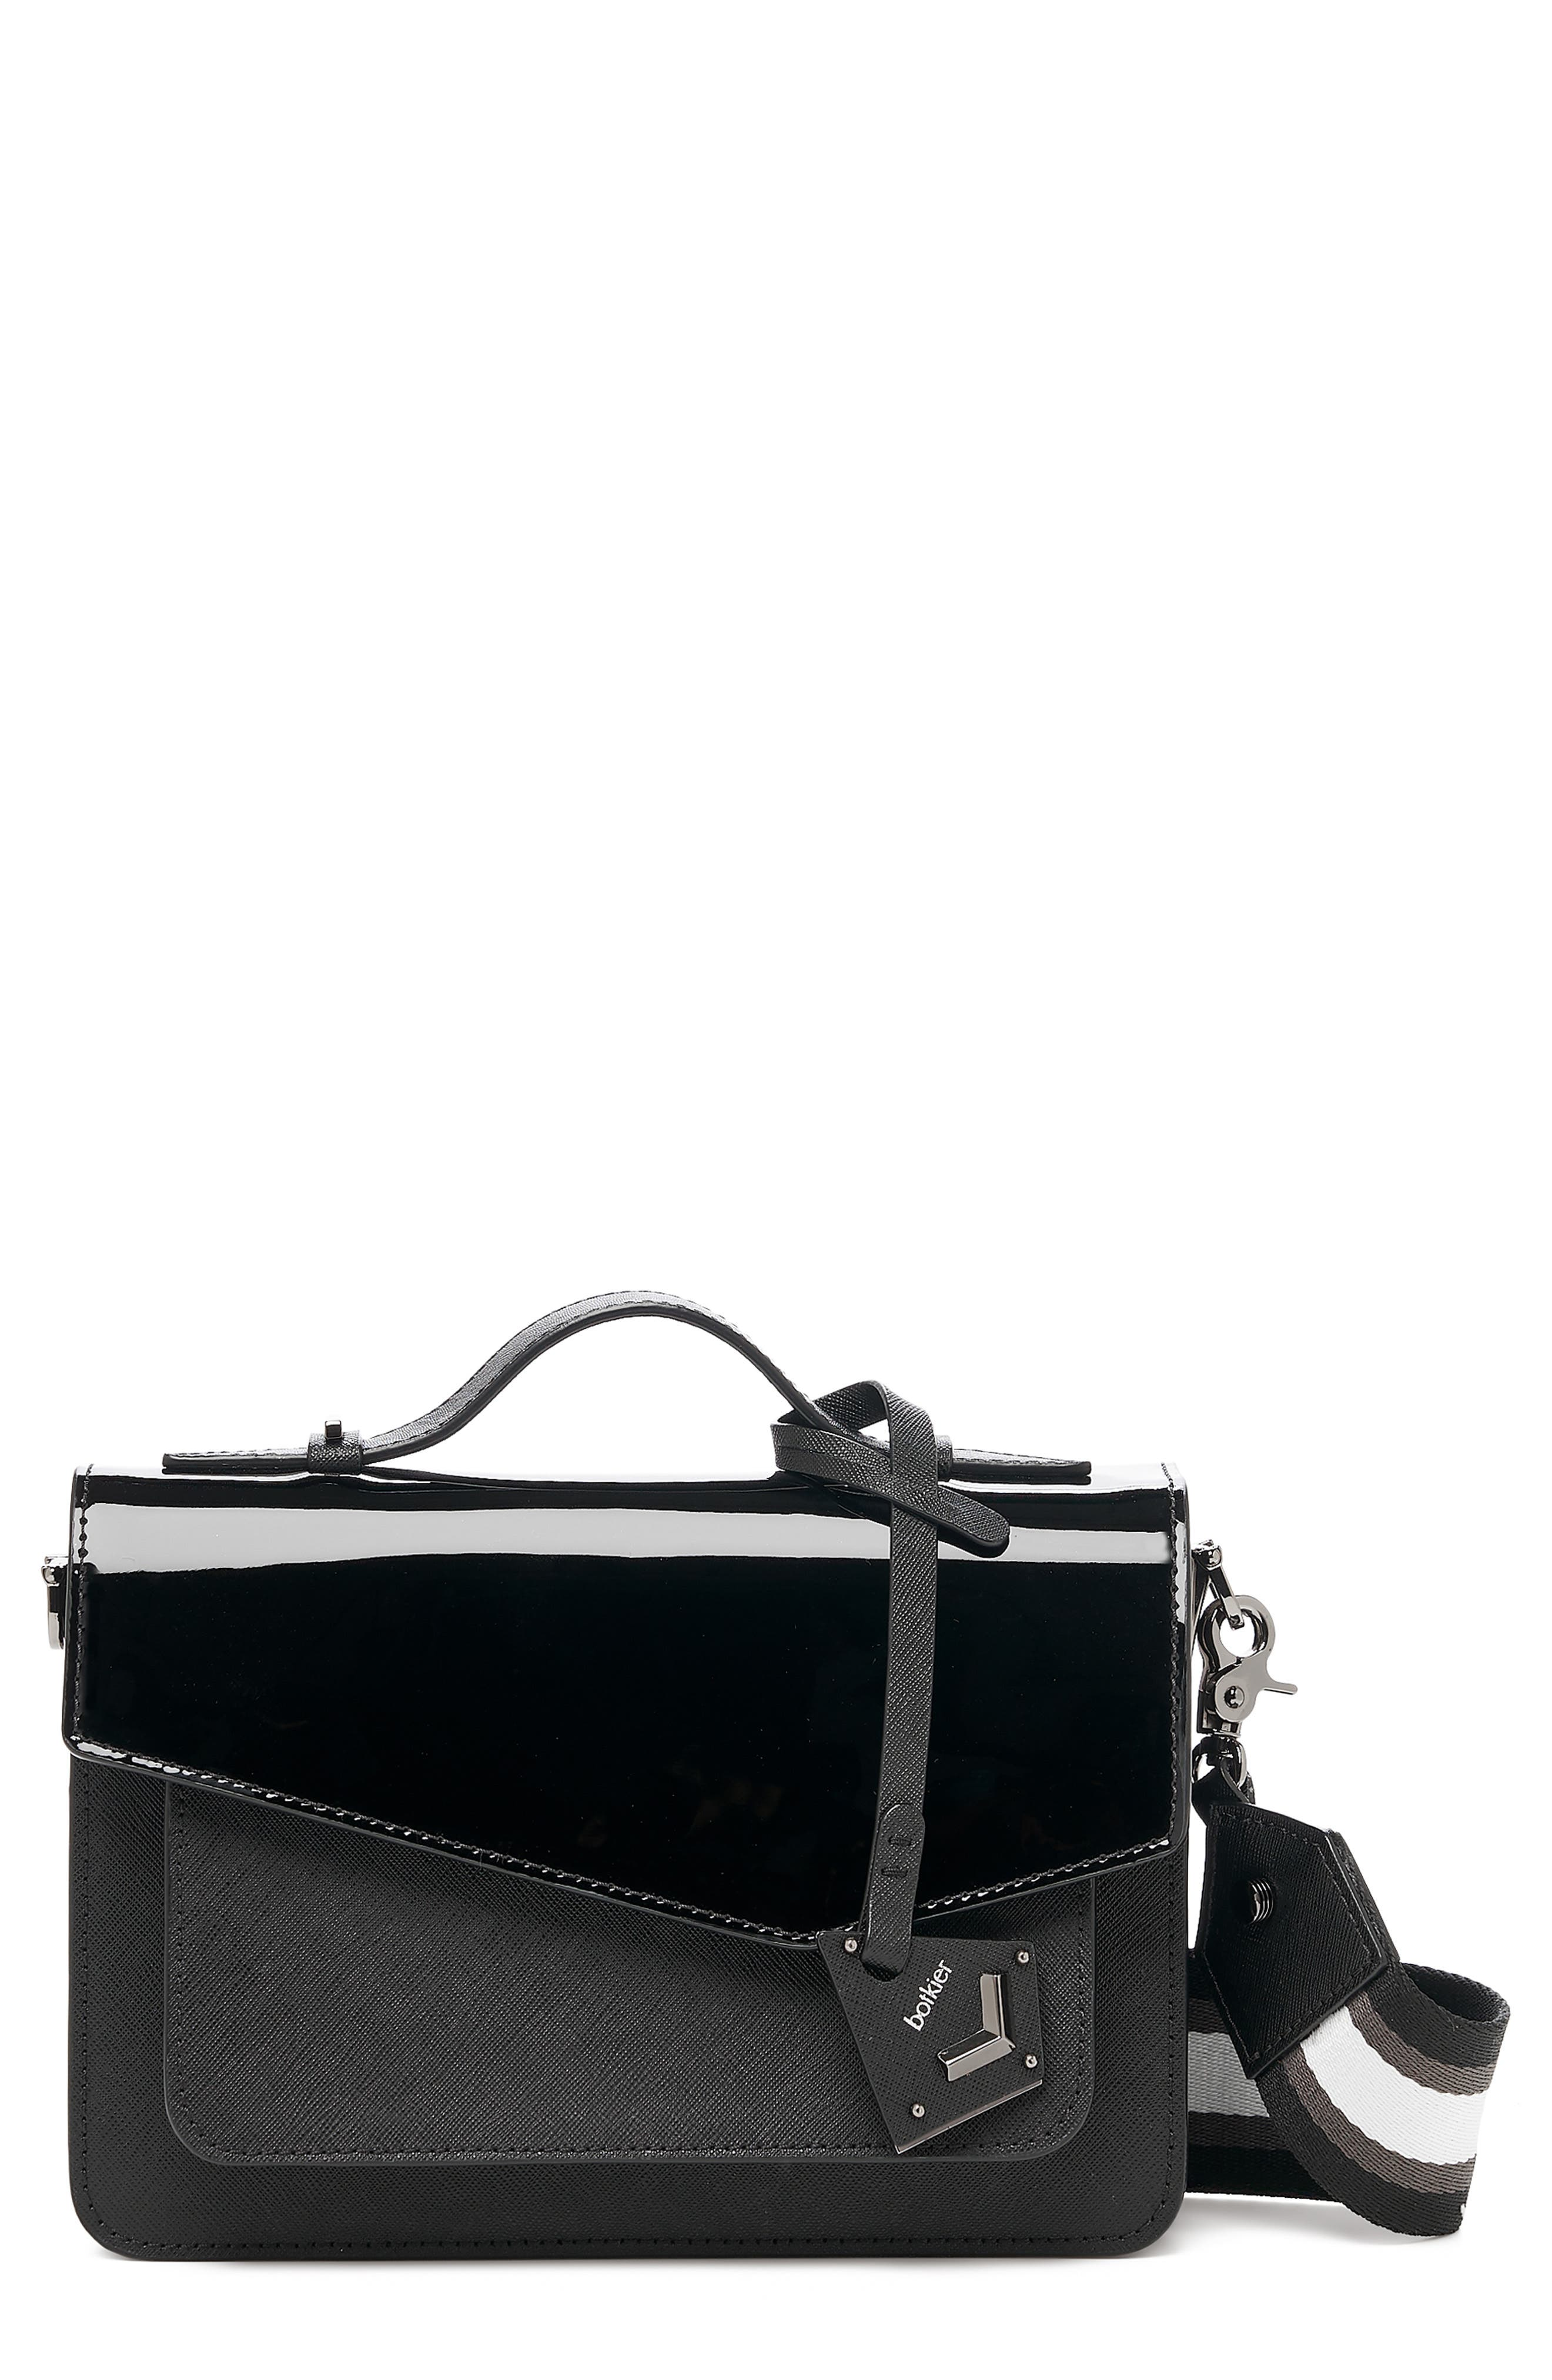 Cobble Hill Leather Crossbody Bag - Black in Black Patent